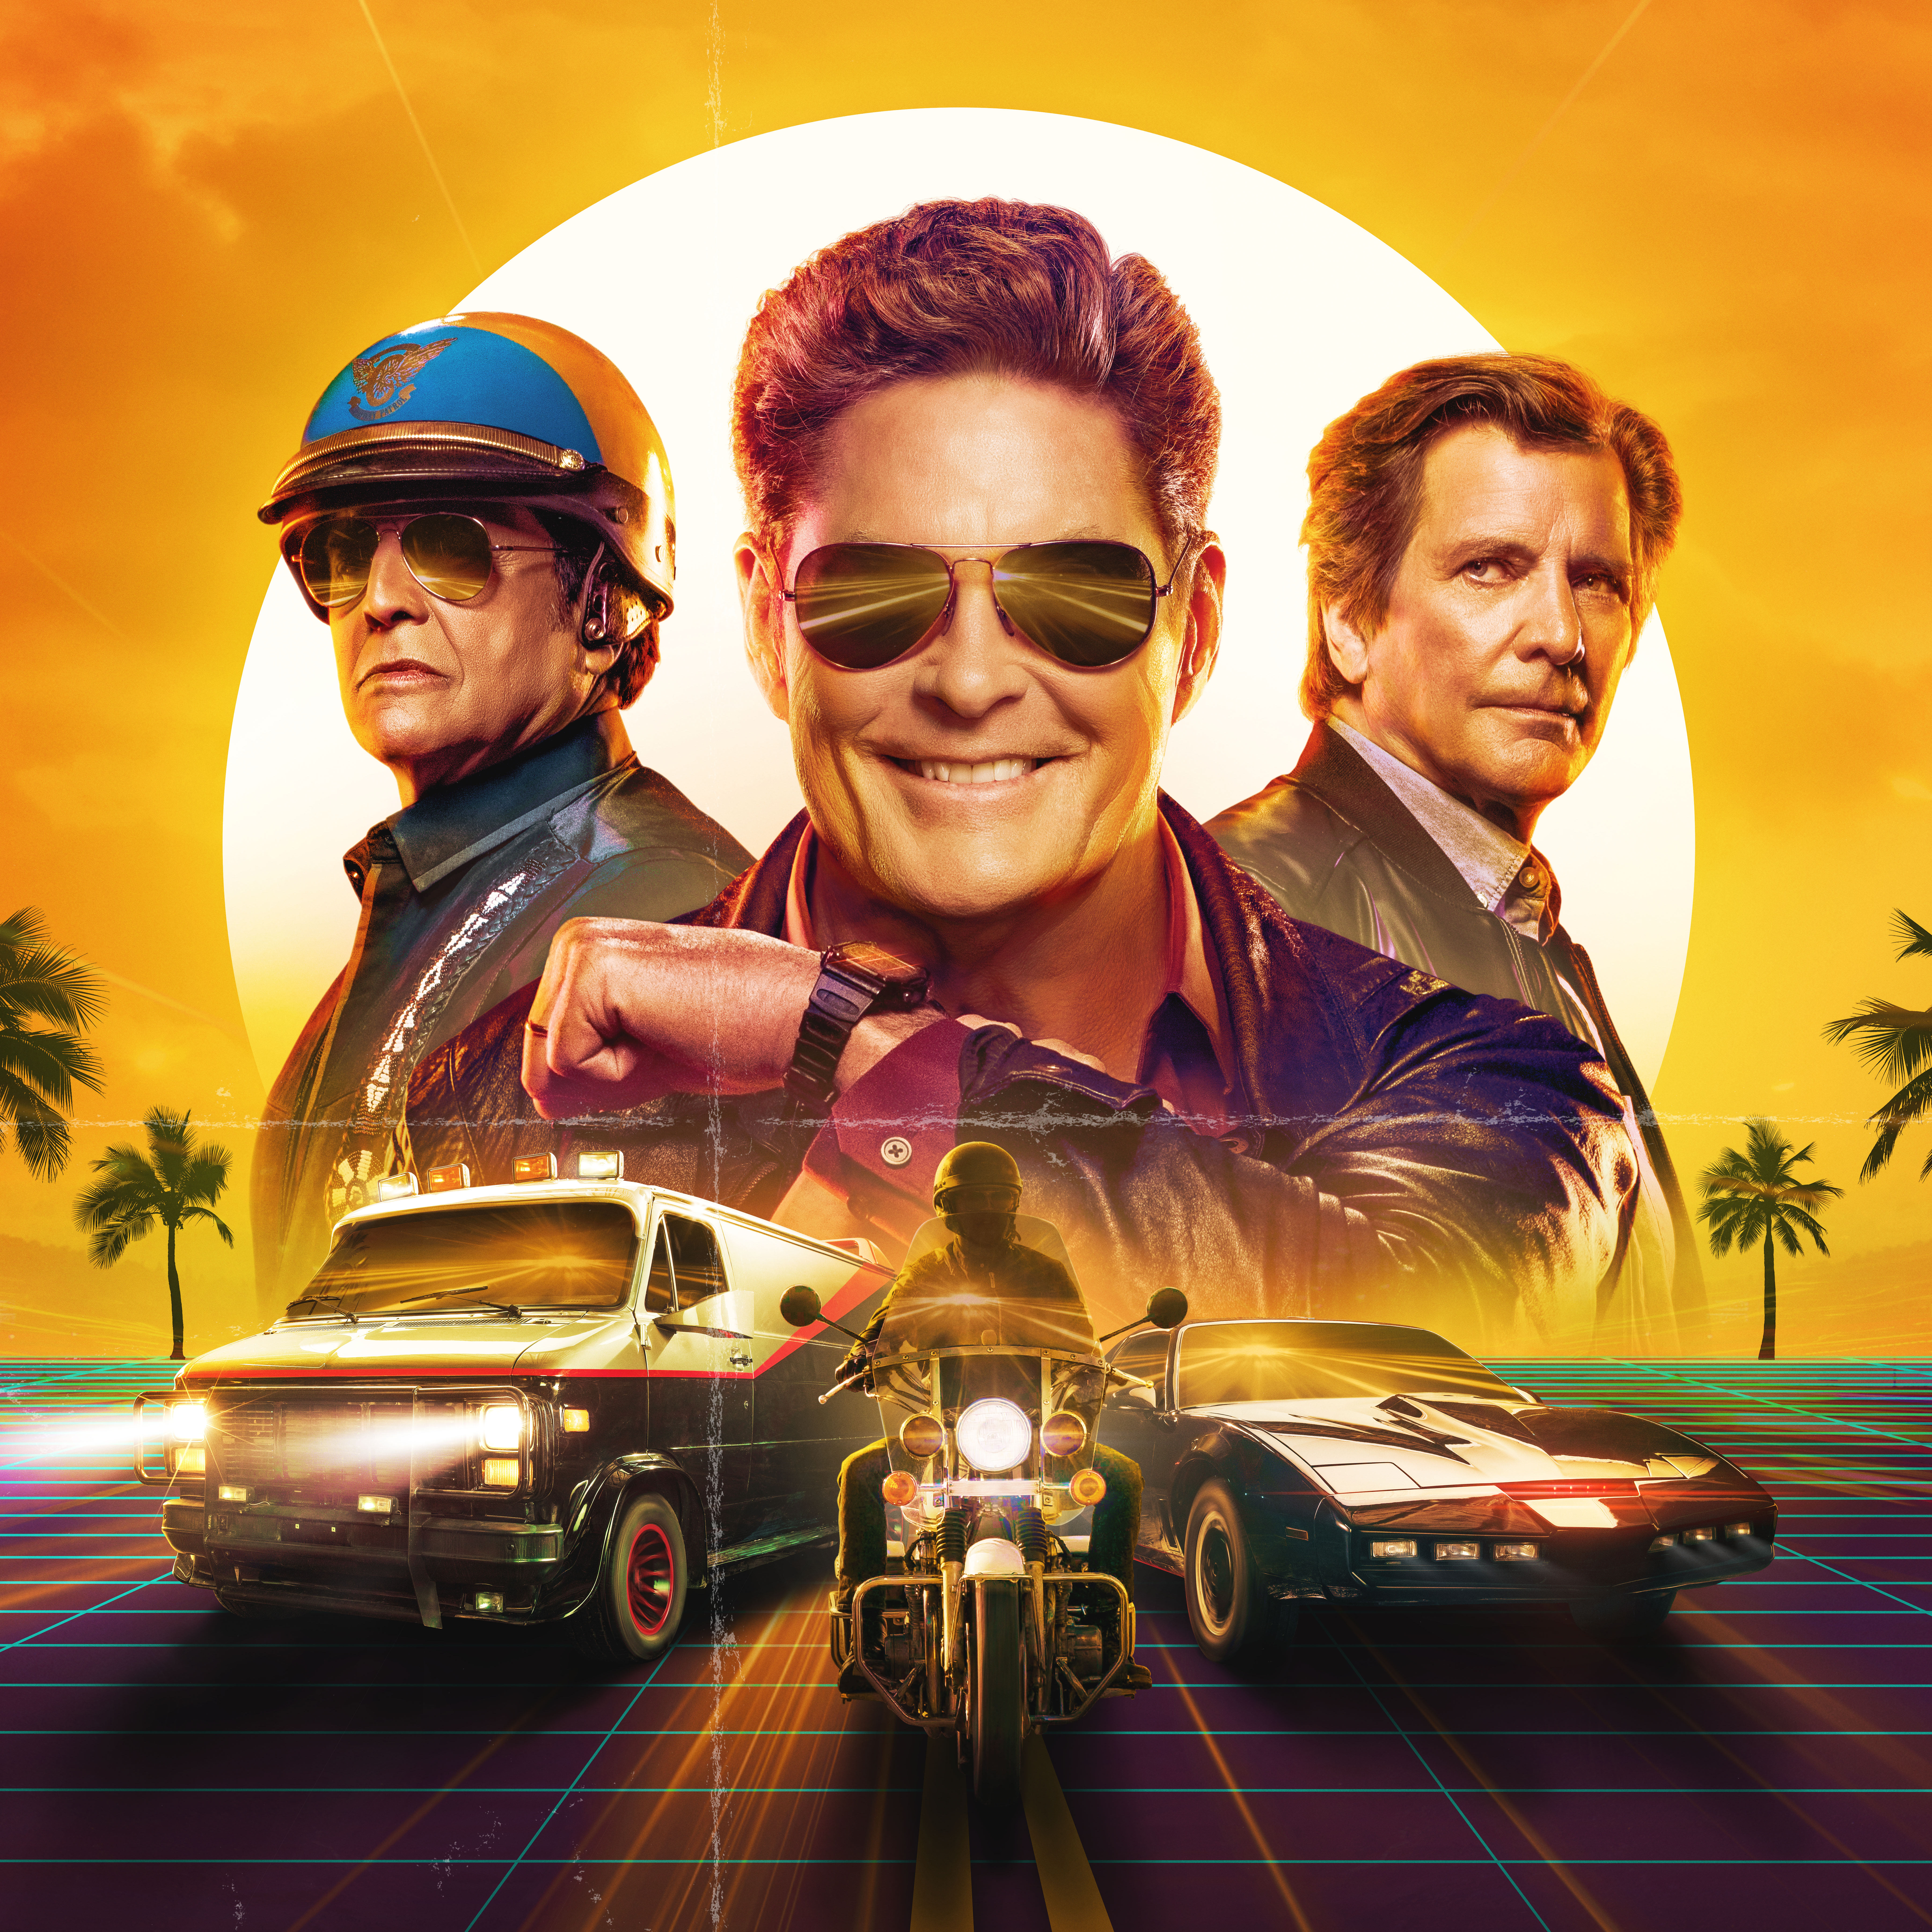 Battle of the 80s Super Cars with David Hasselhoff